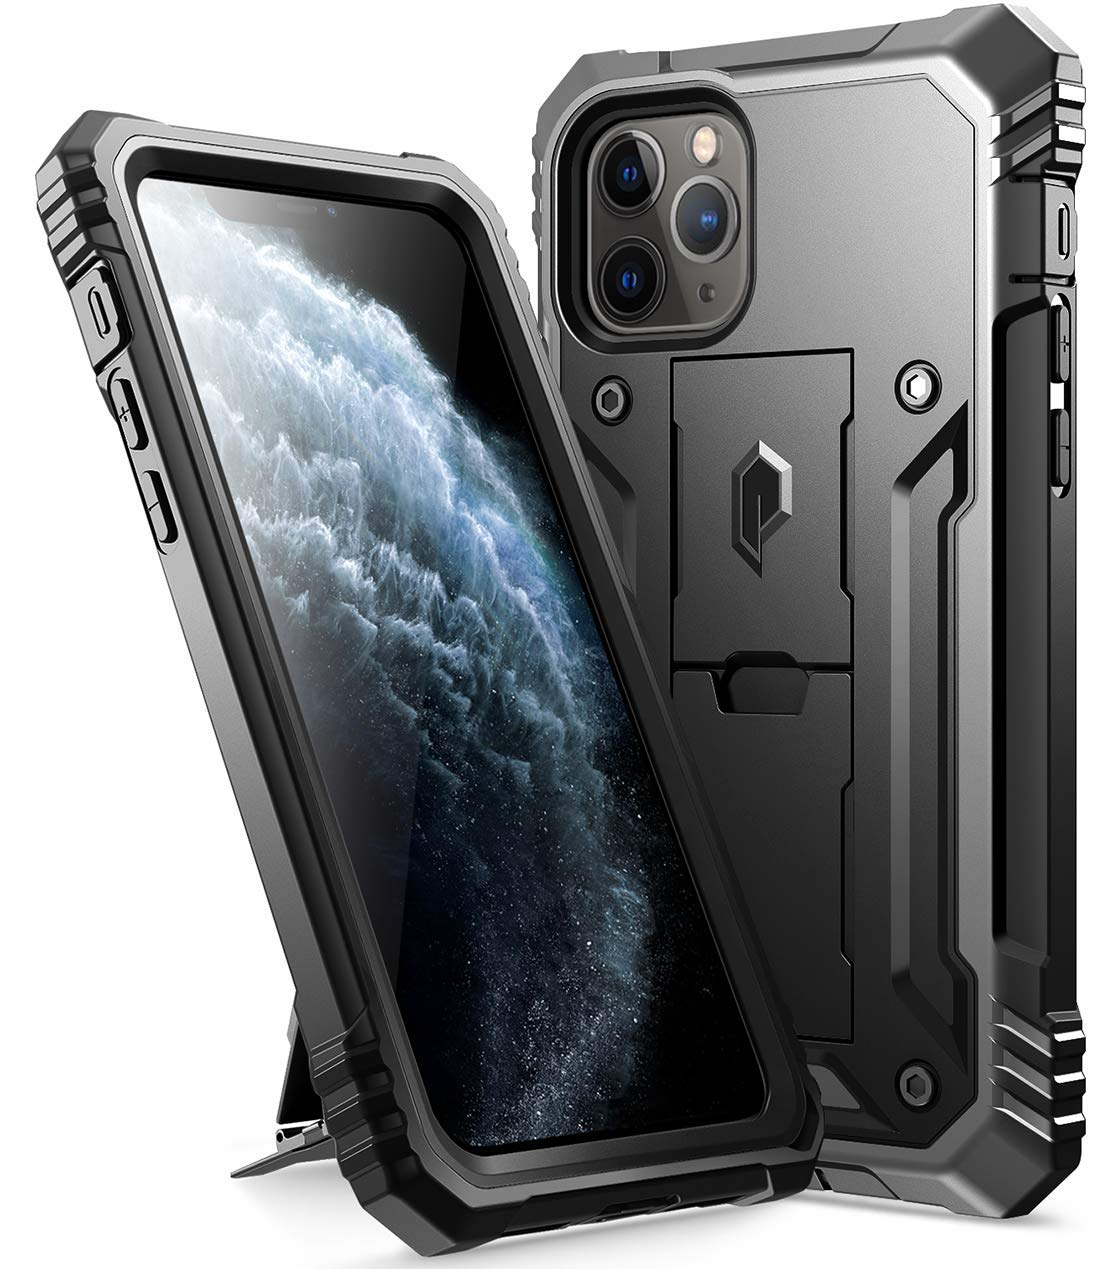 The Time iPhone 11 case